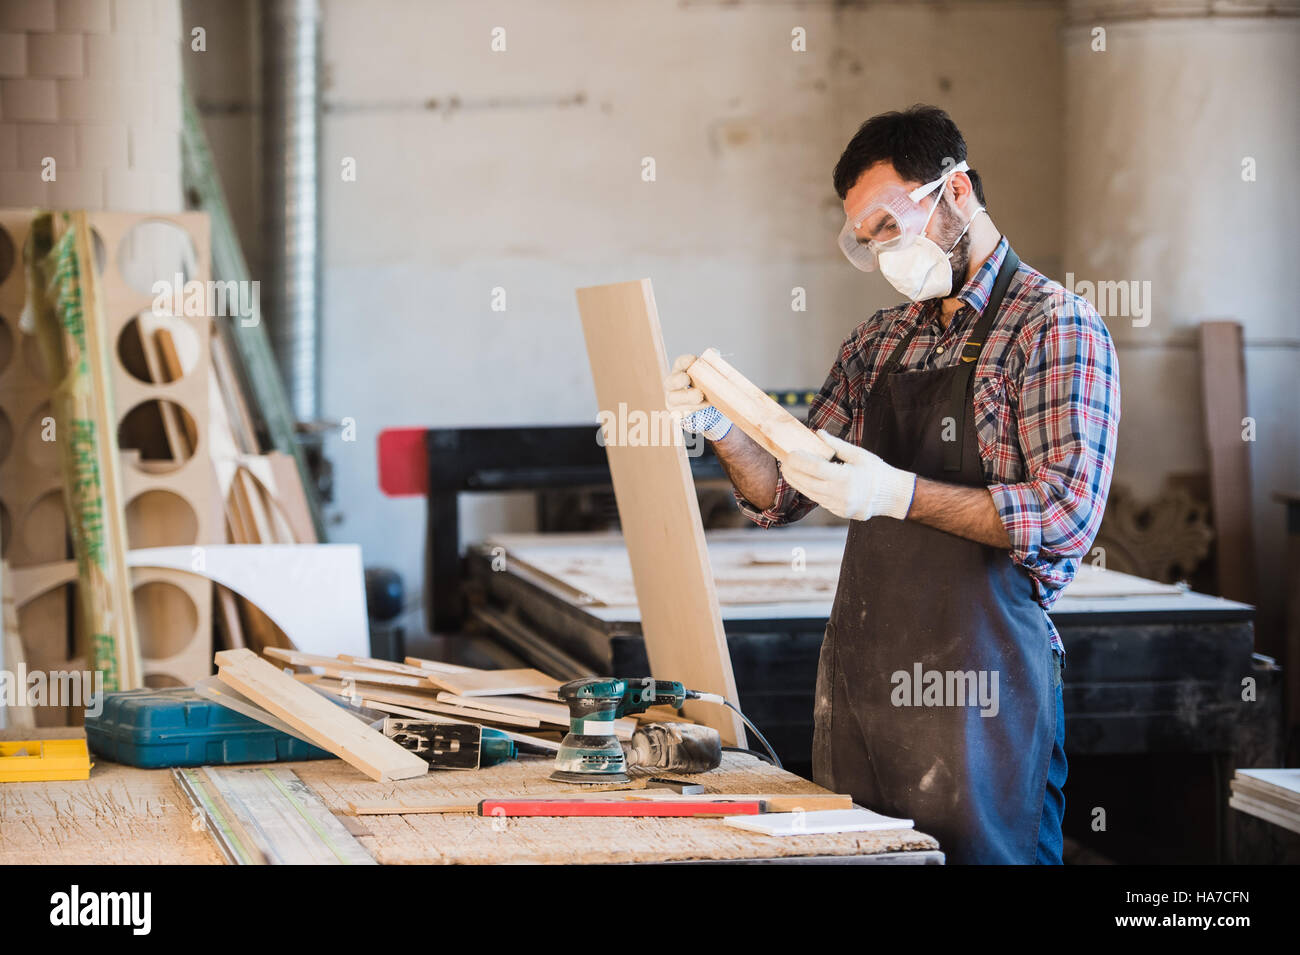 Horizontal view of professionally dressed carpenter varnishing a board - Stock Image